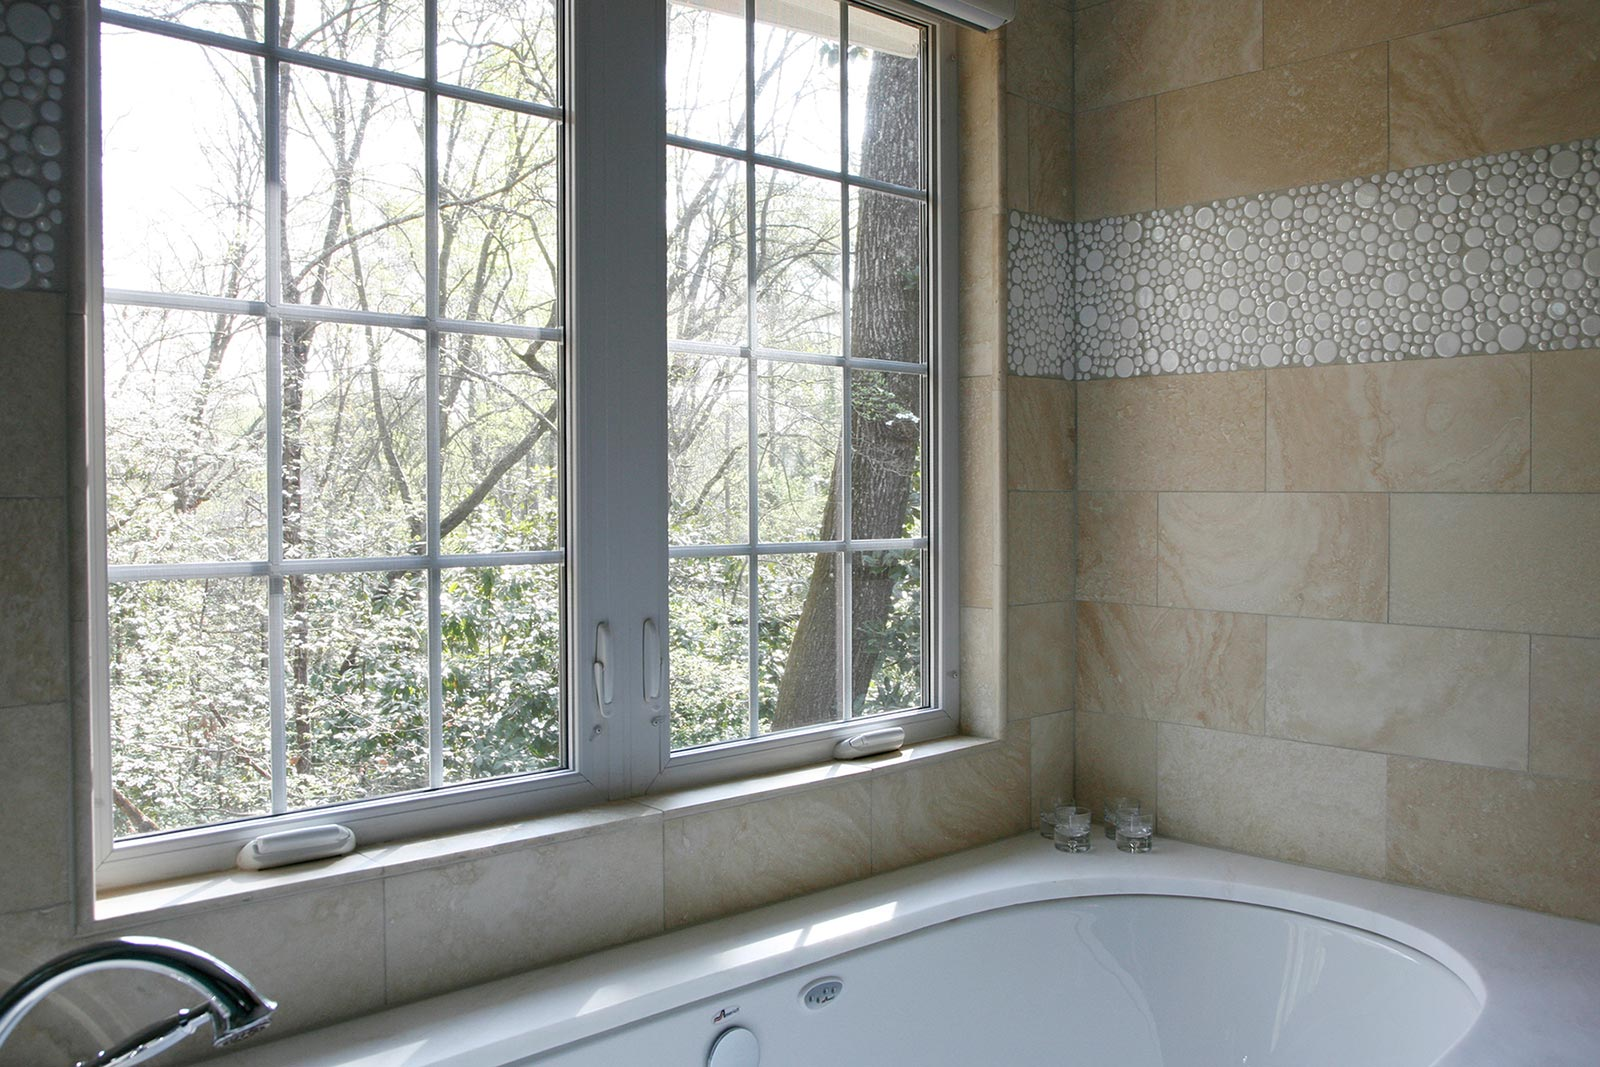 Large windows over garden-style tub